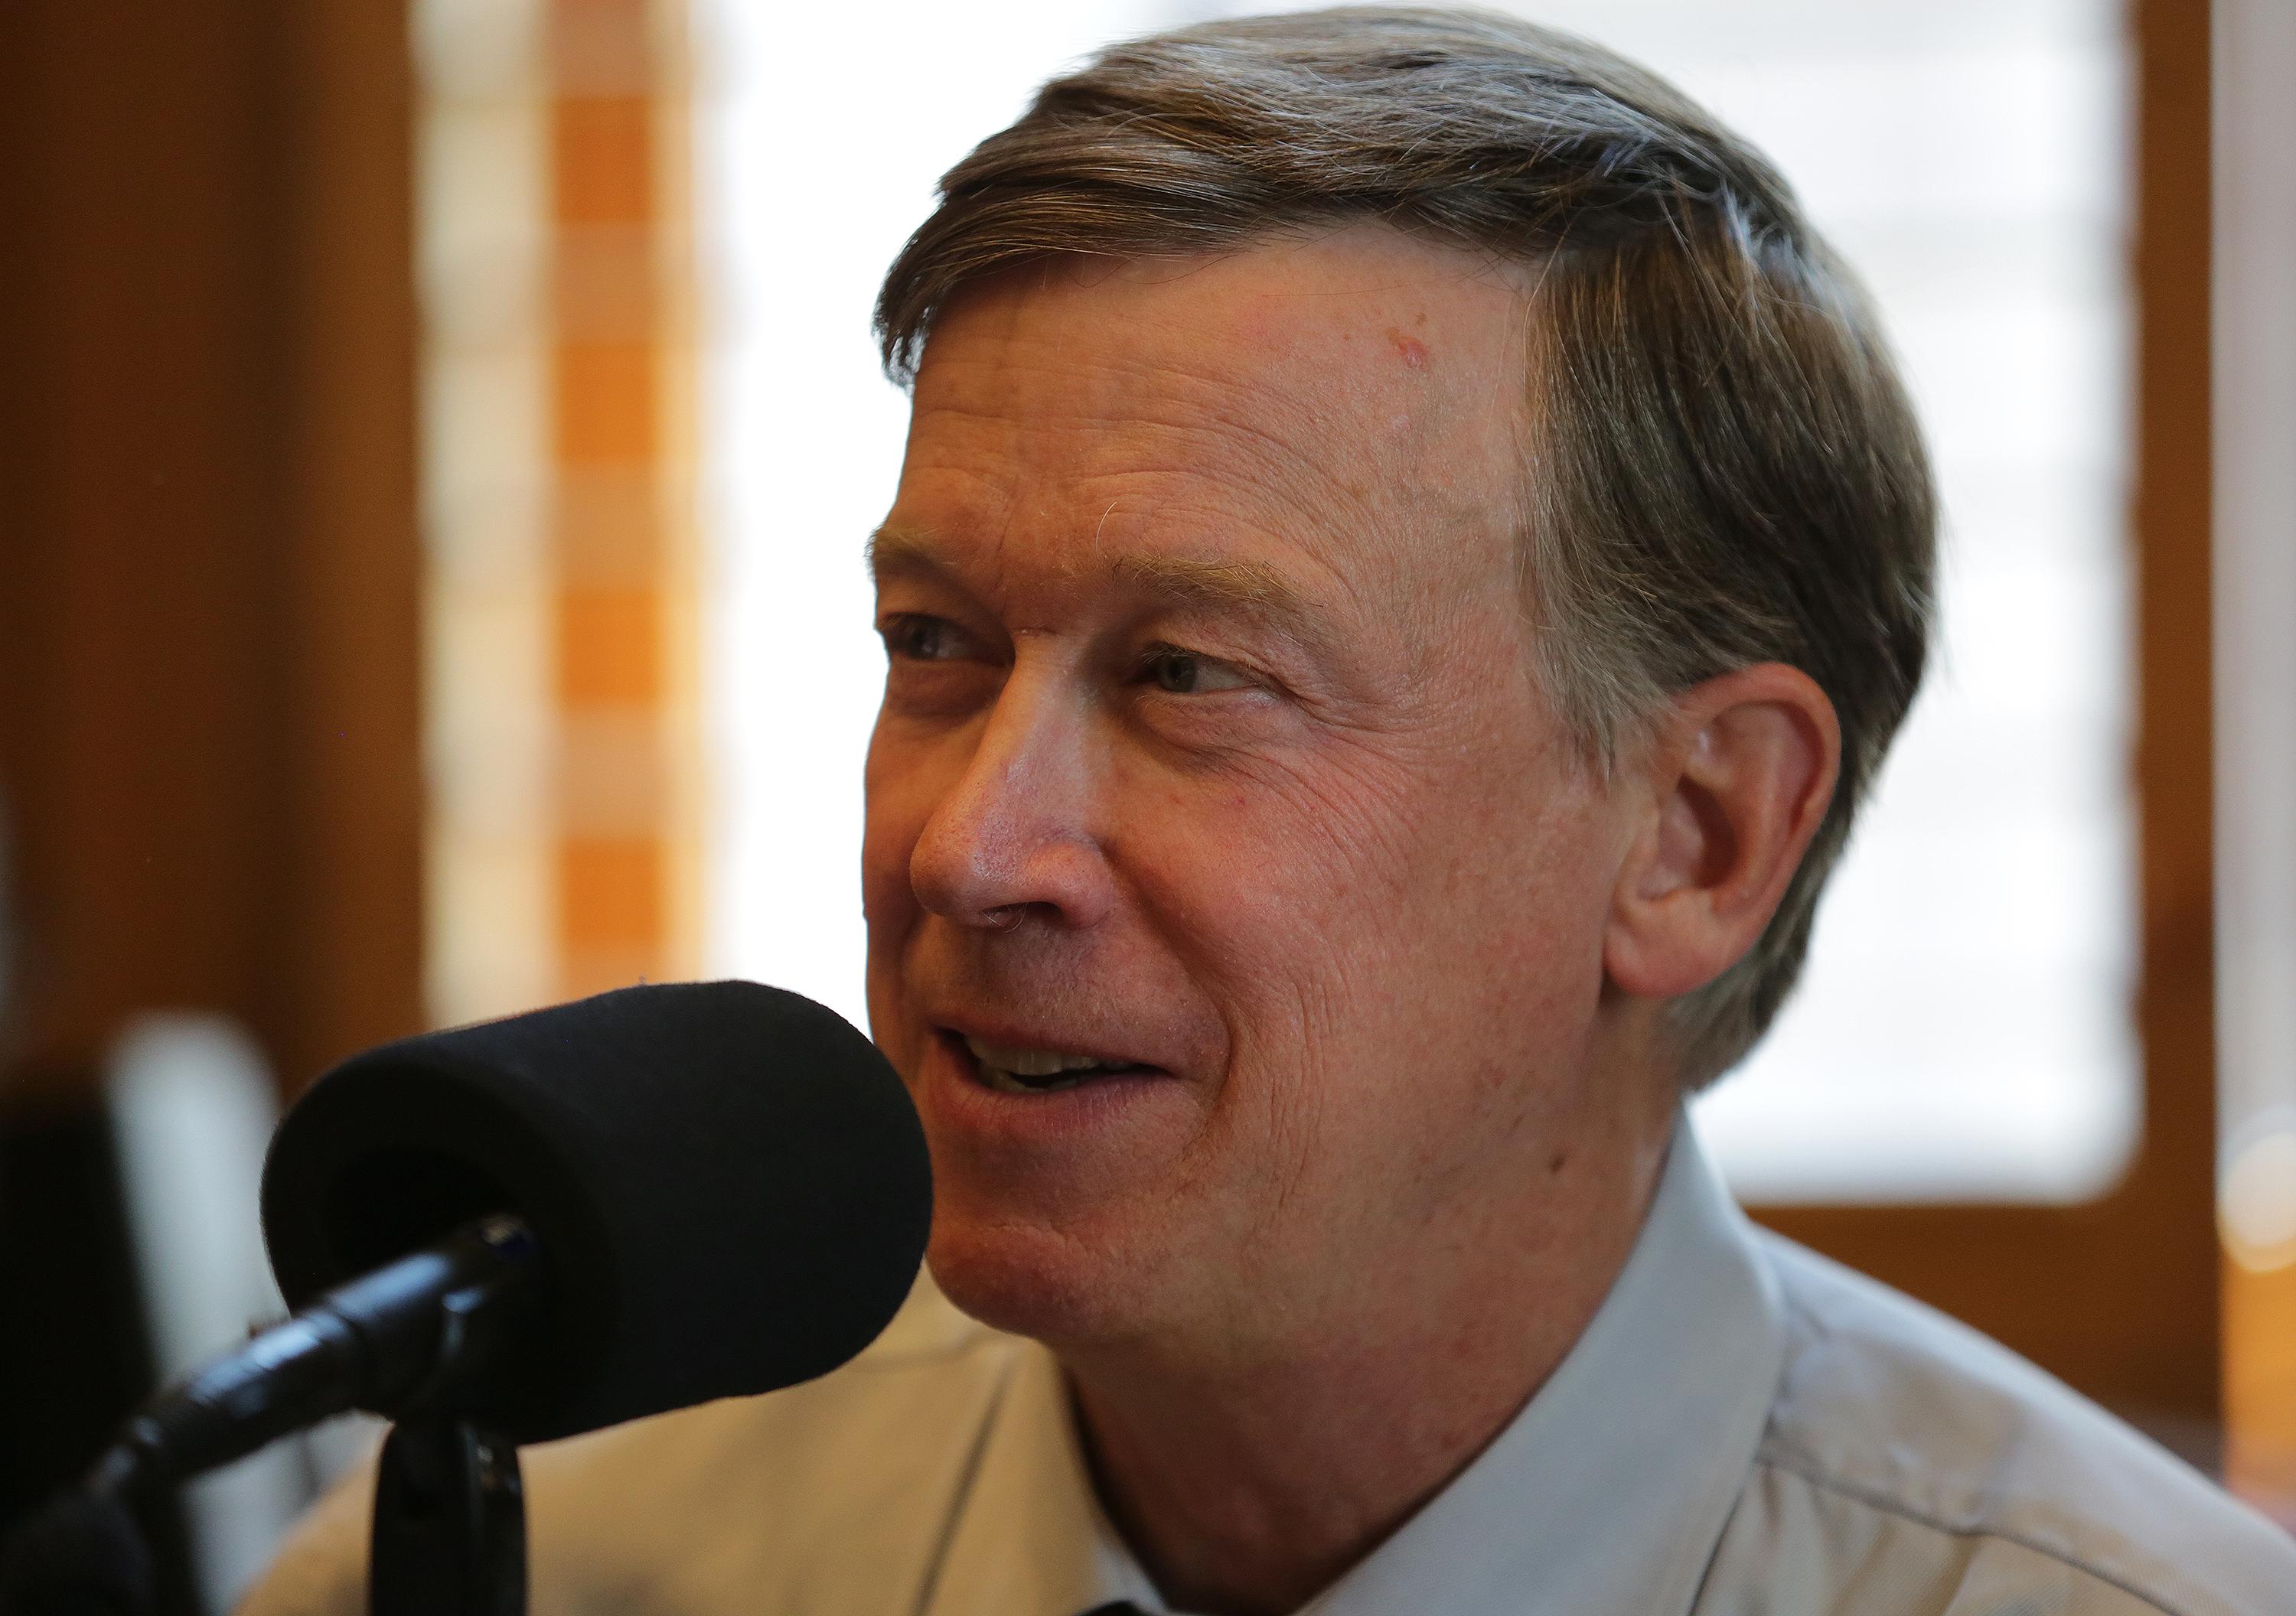 Photo: Gov. John Hickenlooper September 2016 | 1